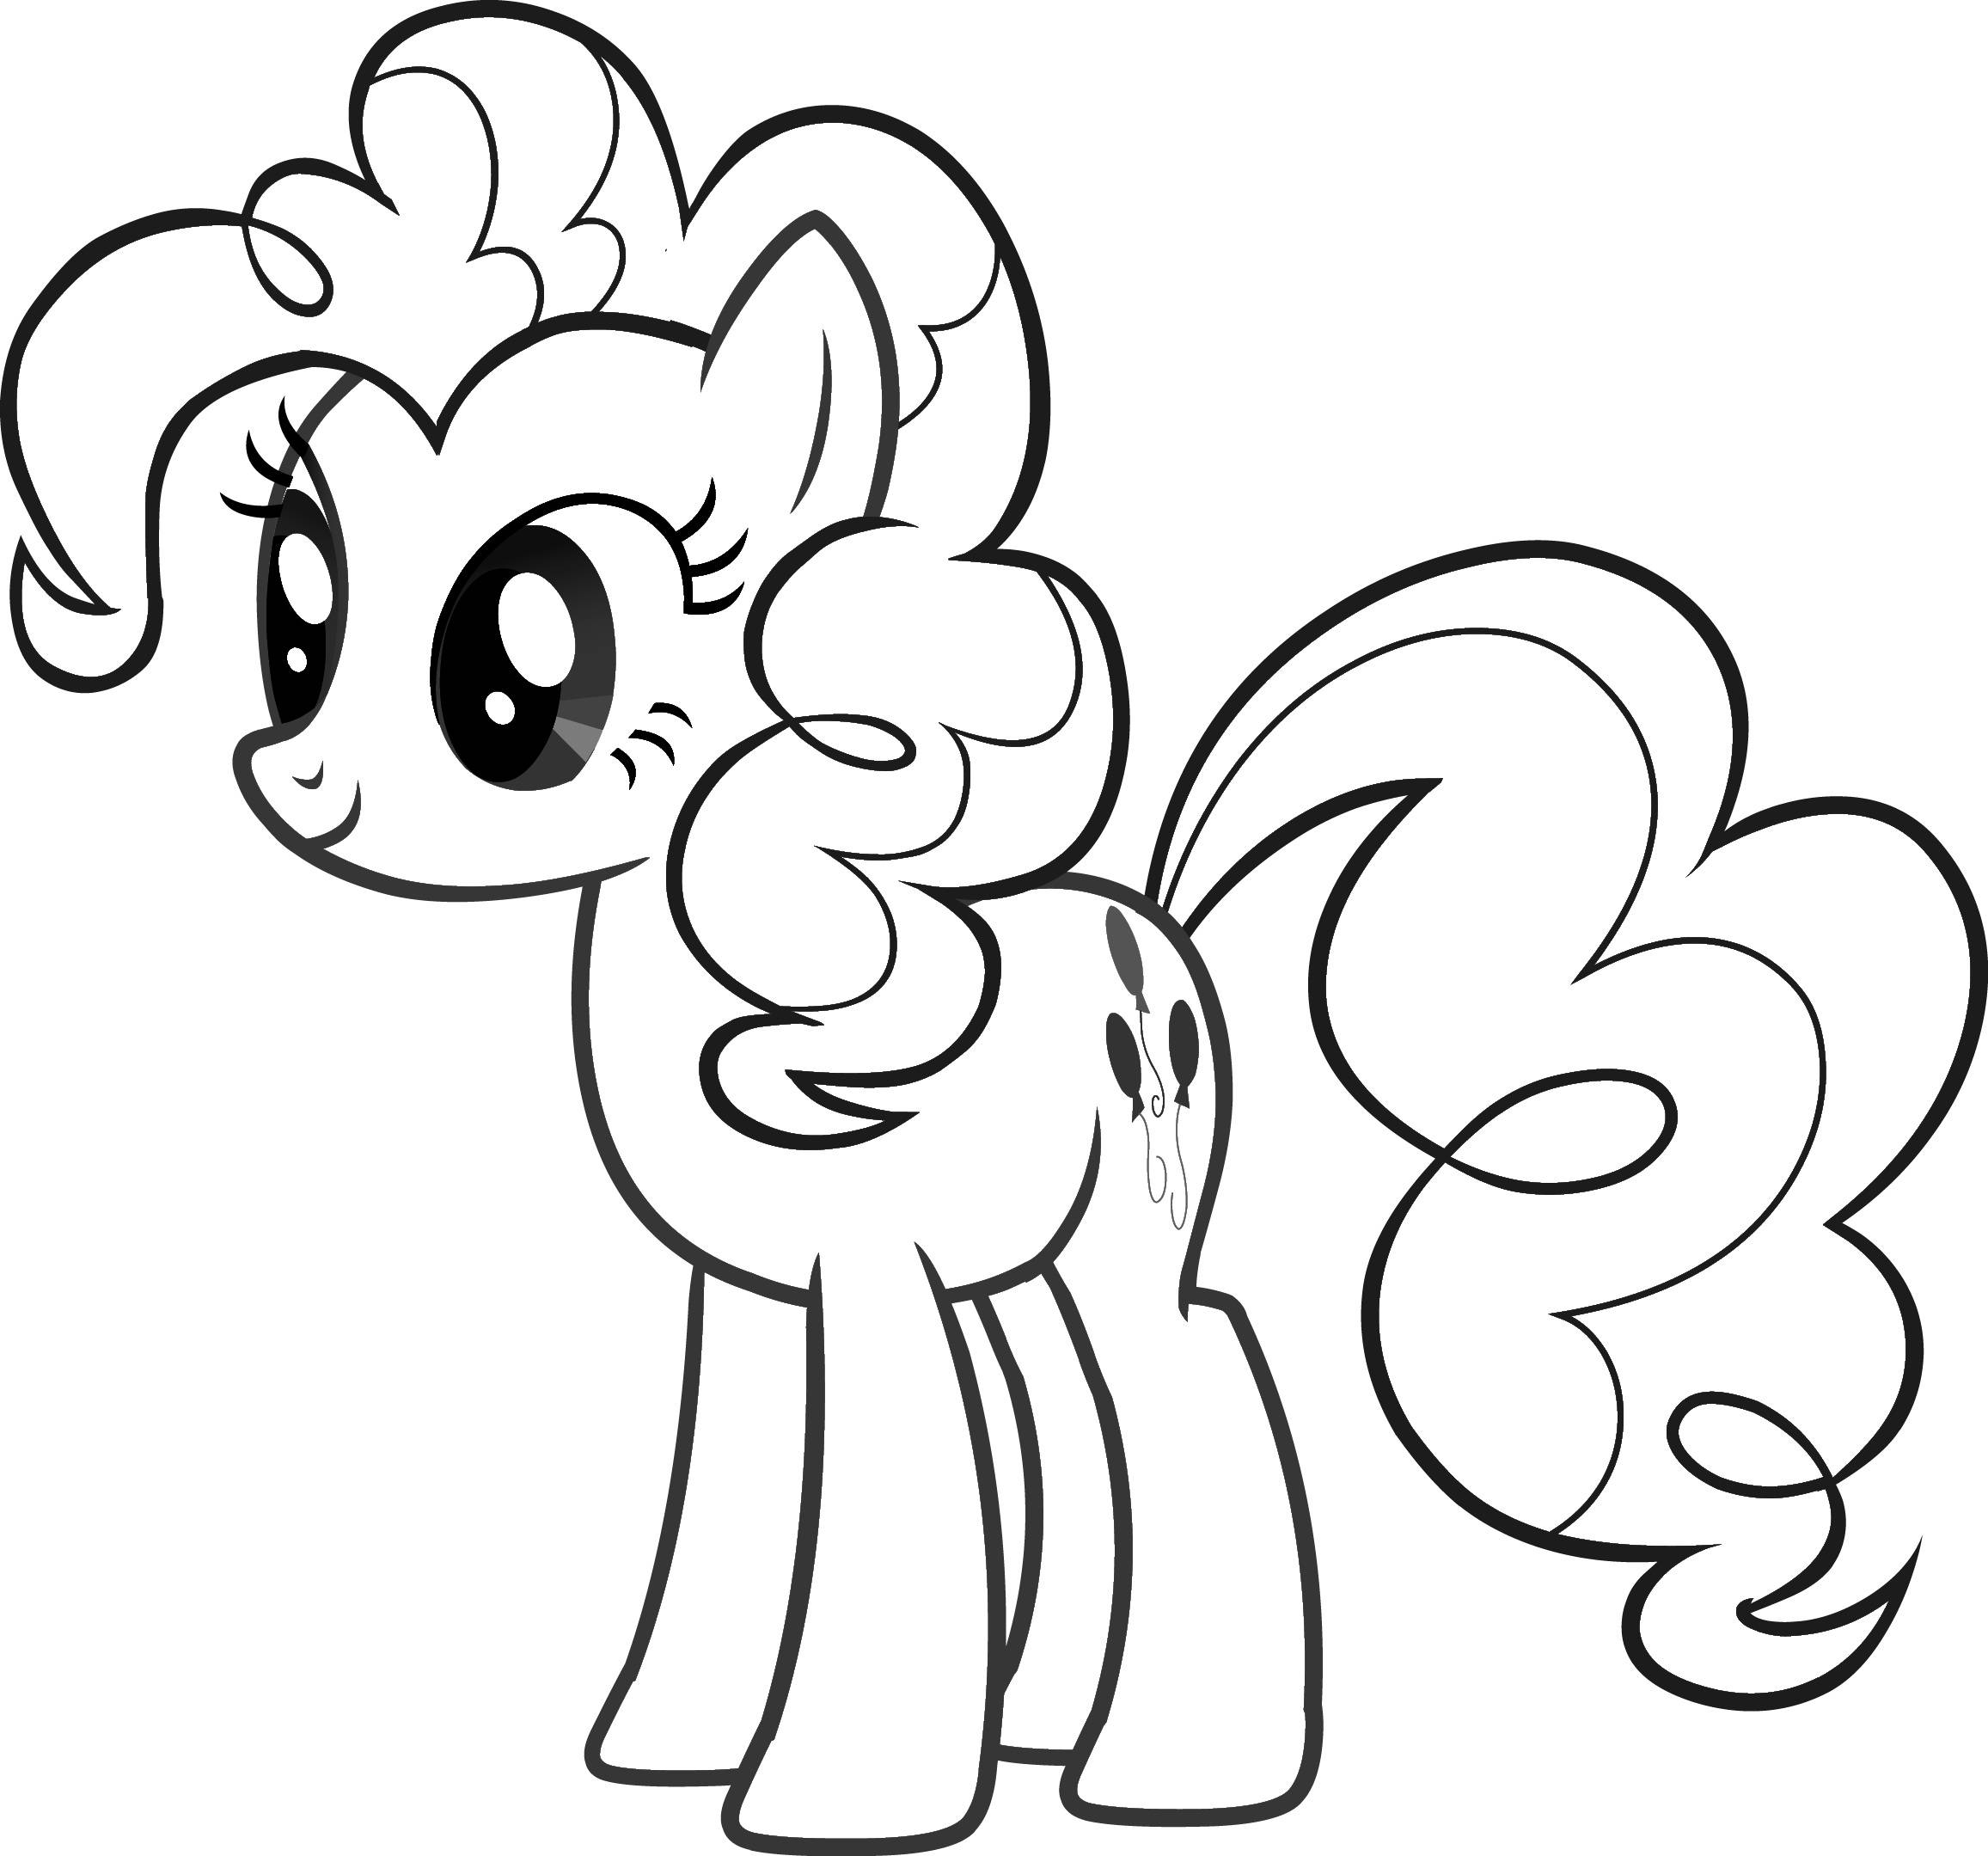 free my little pony coloring pages - my little pony coloring pages